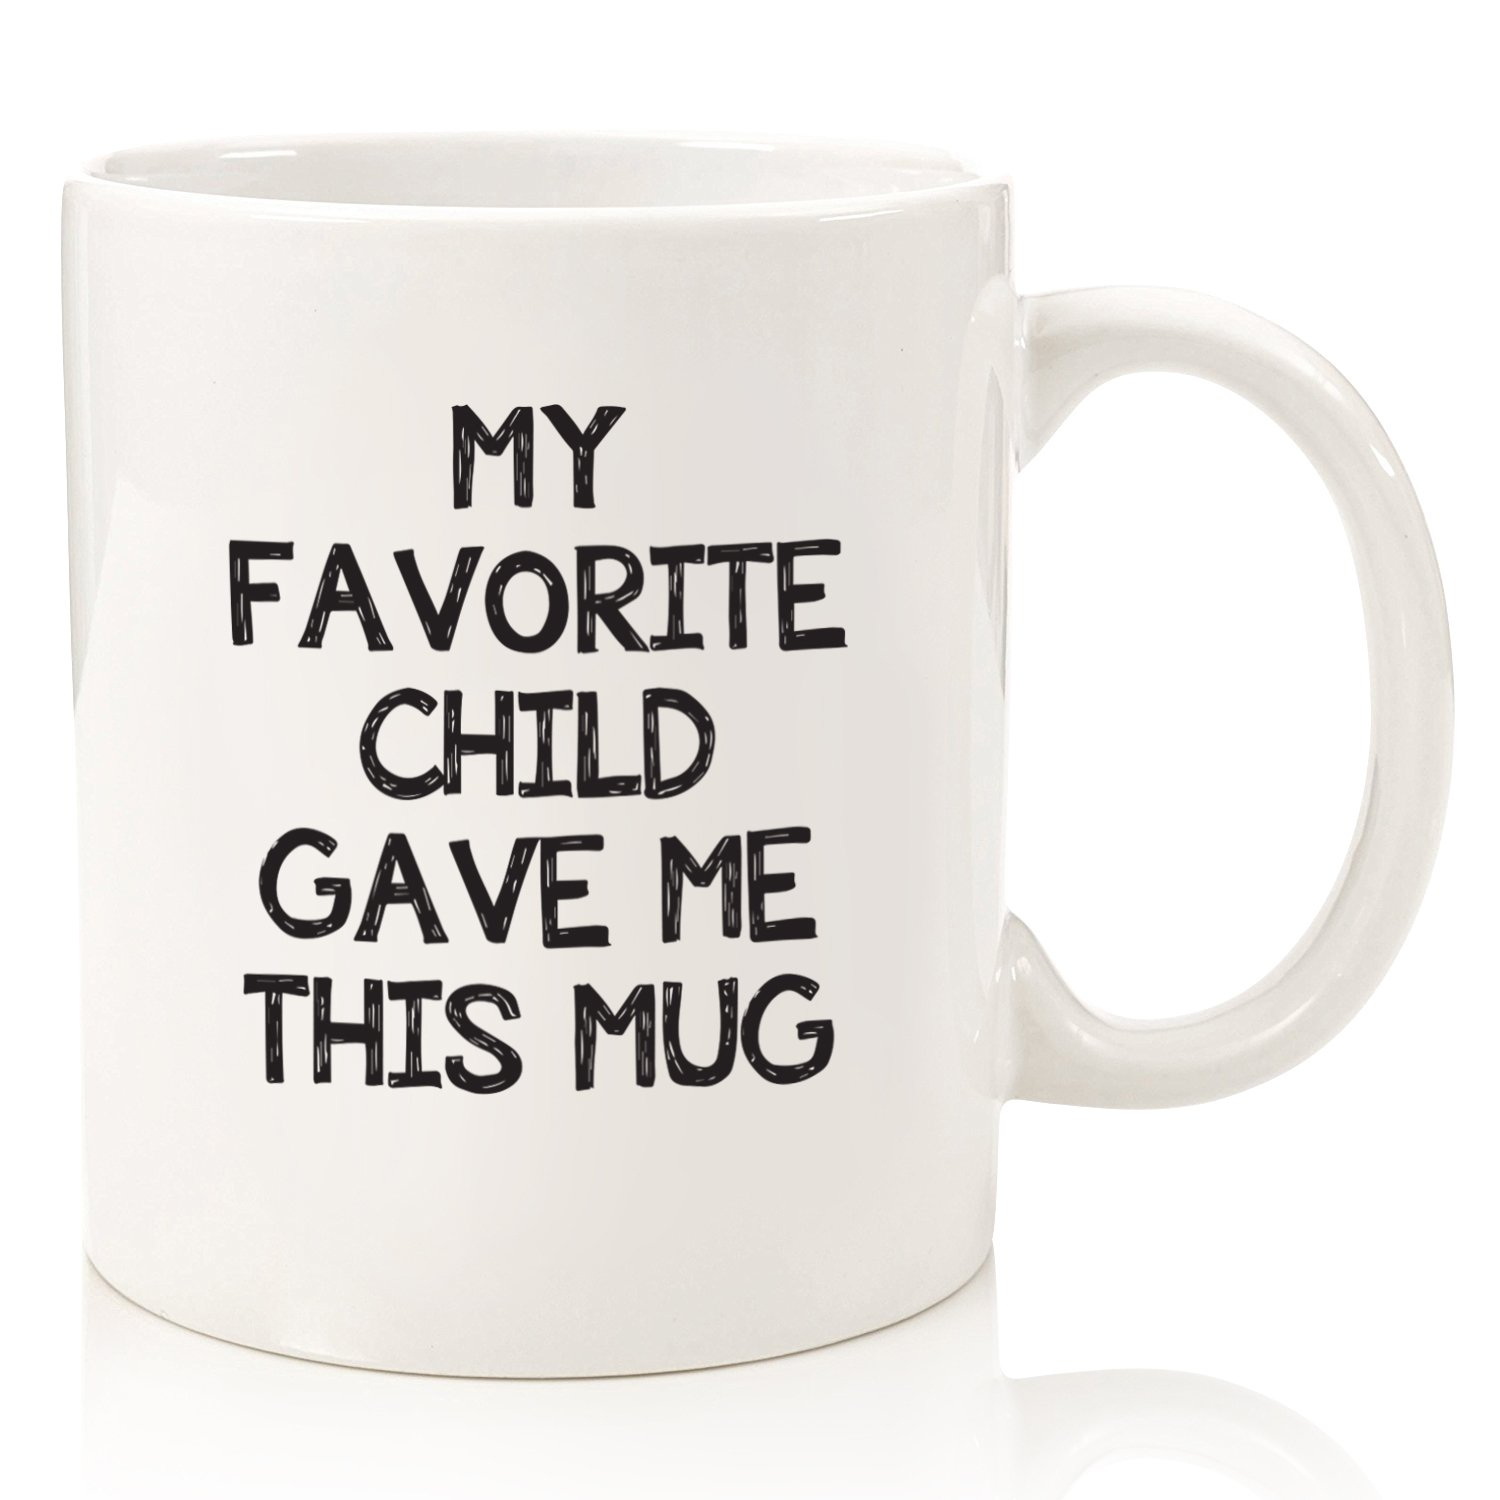 My Favorite Child Gave Me This Funny Coffee Mug - Best Dad & Mom Gifts - Gag Father's Day Present Idea From Daughter, Son, Kids - Novelty Birthday Gift For Parents - Fun Cup For Men, Women, Him, Her by Wittsy Glassware and Gifts